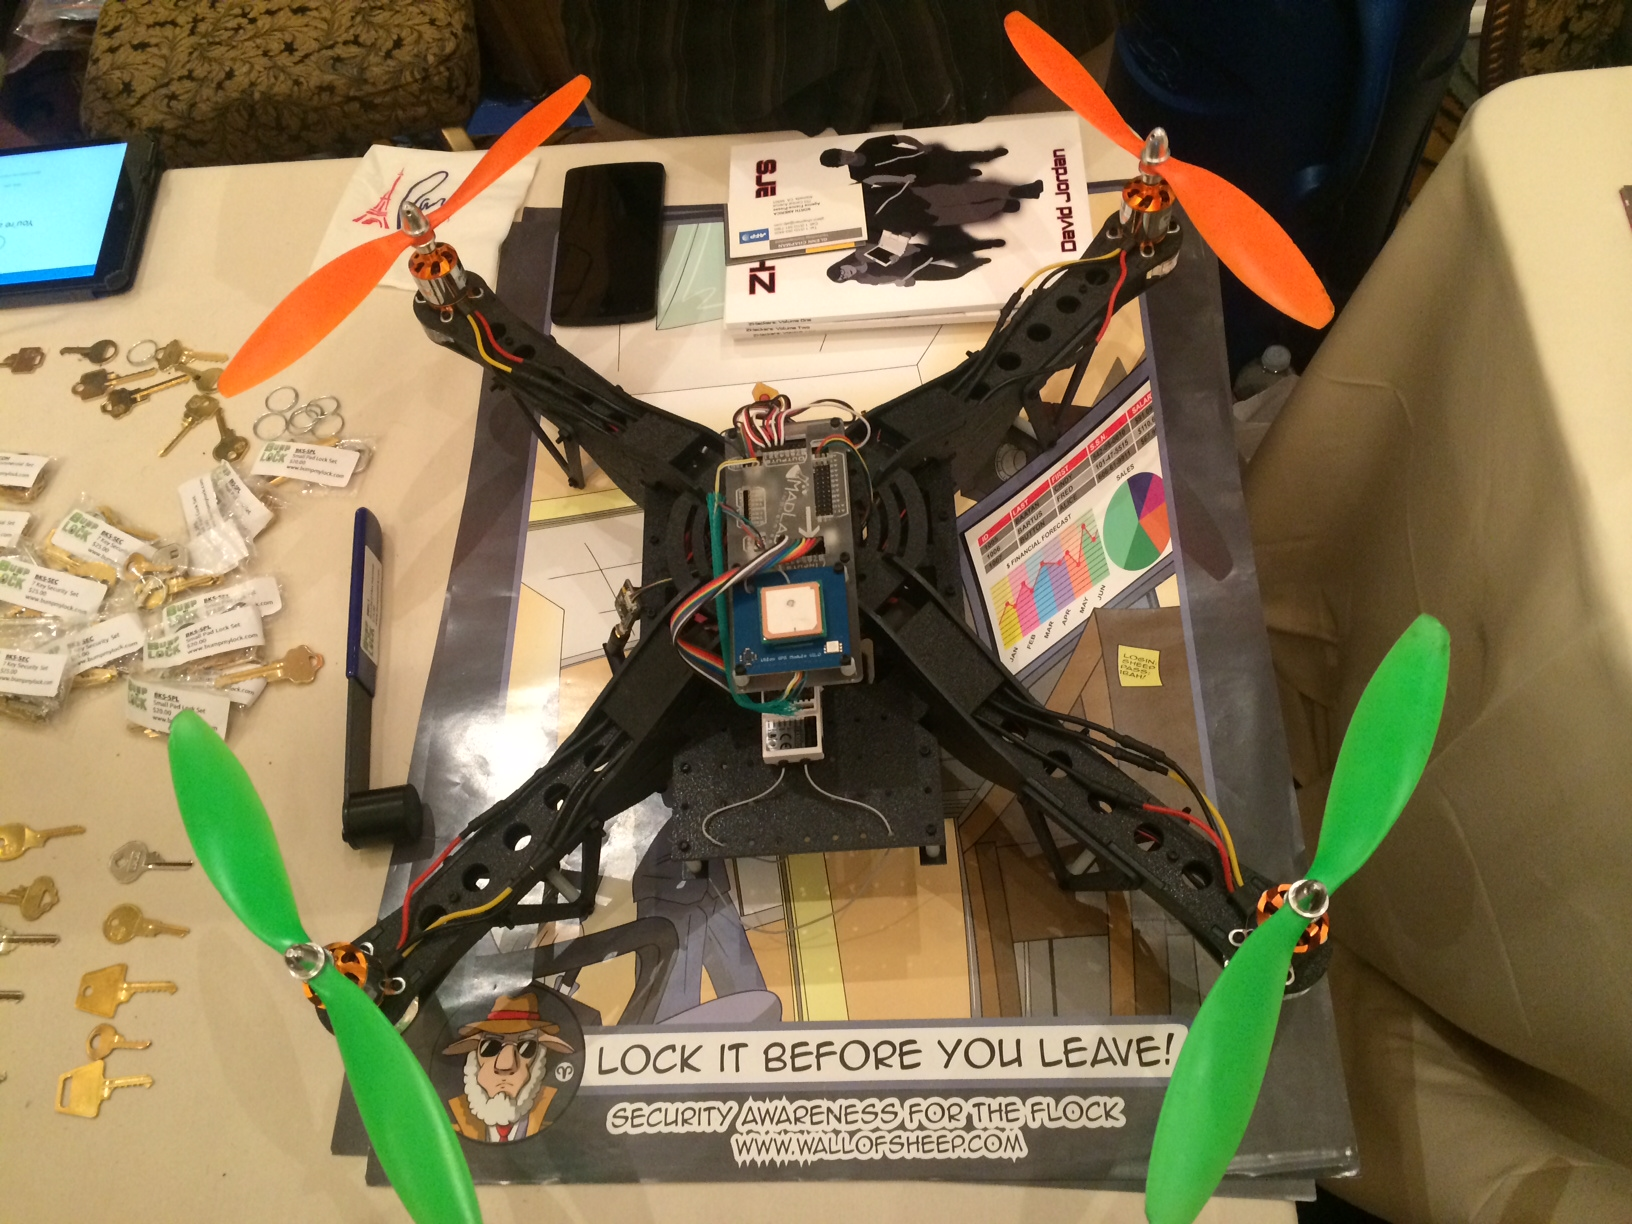 Drone At DEFCON Hacks From The Sky